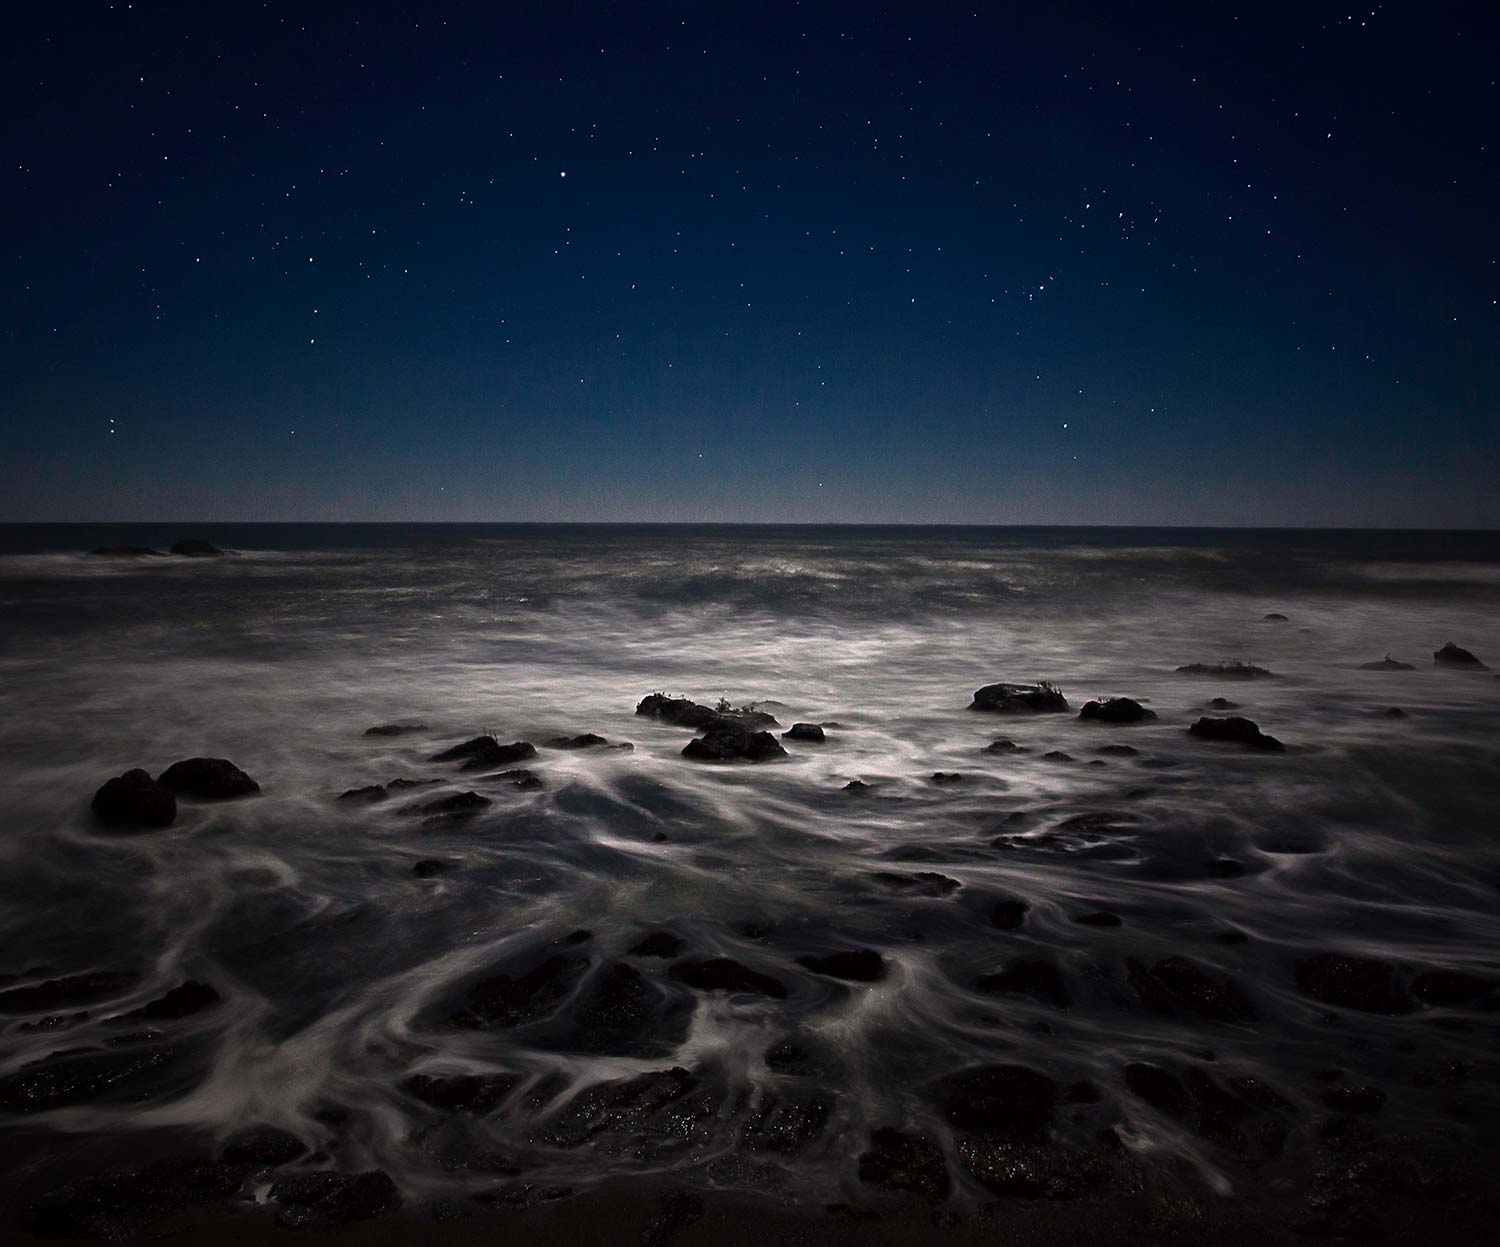 Ocean Night Photograph